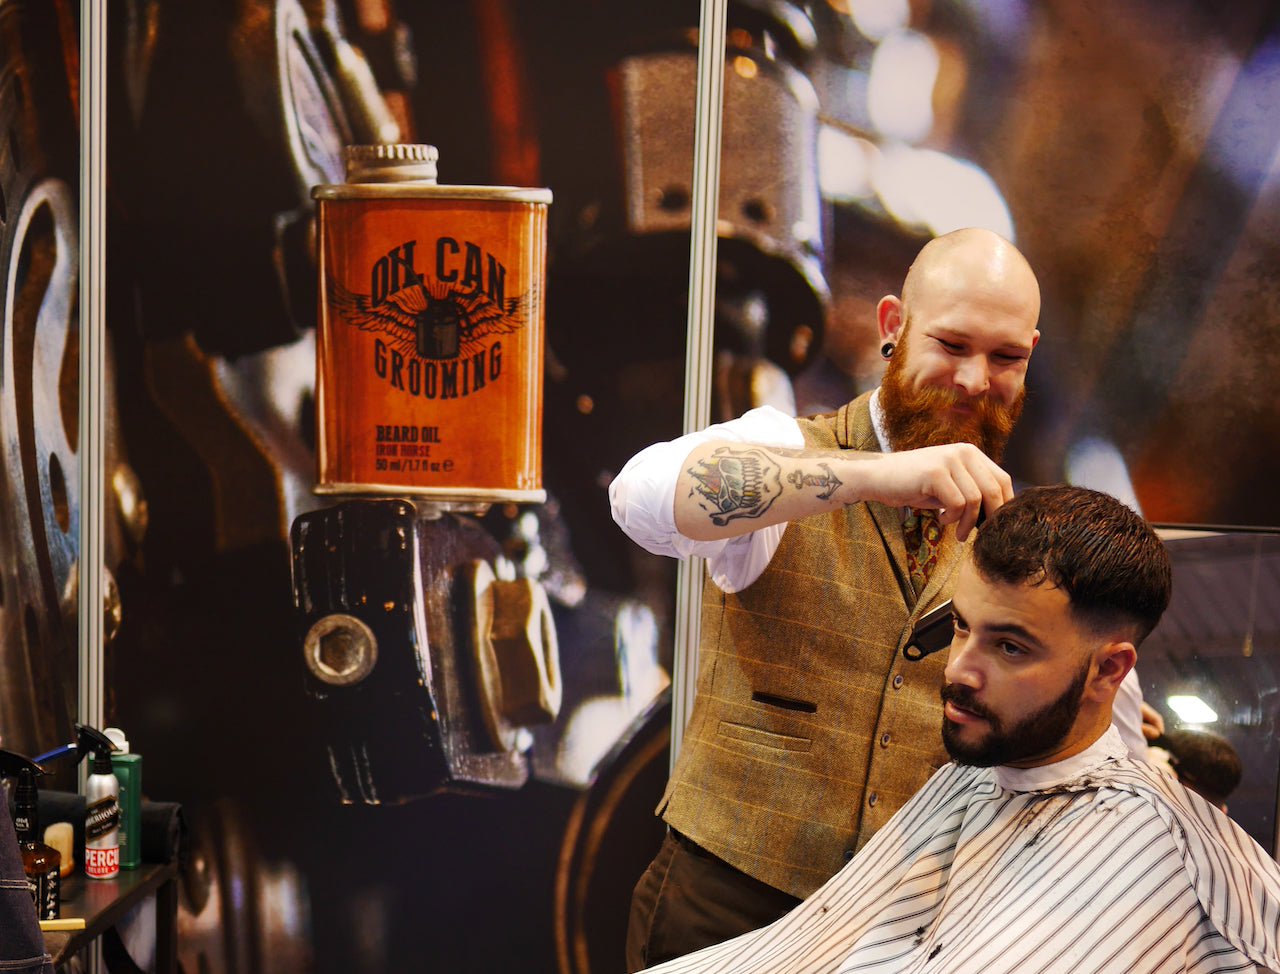 Oil Can Grooming Barber Connect Trade Show Pauly Harmer